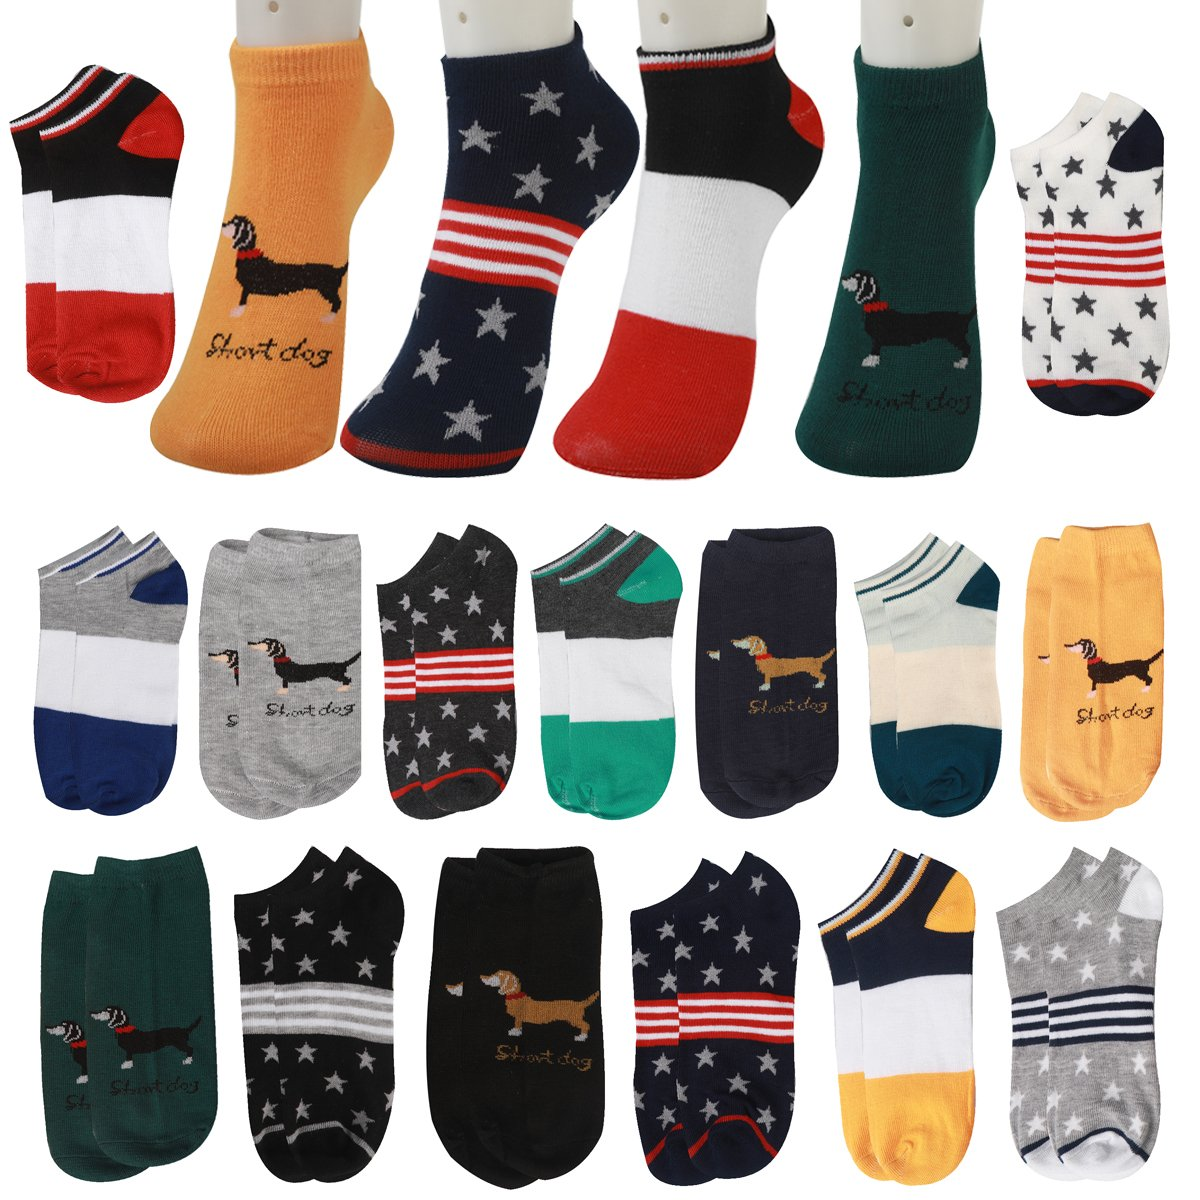 15 Pairs Dog Patterned Funny Funky Novelty Cotton Low Cut No Show Ankle Socks